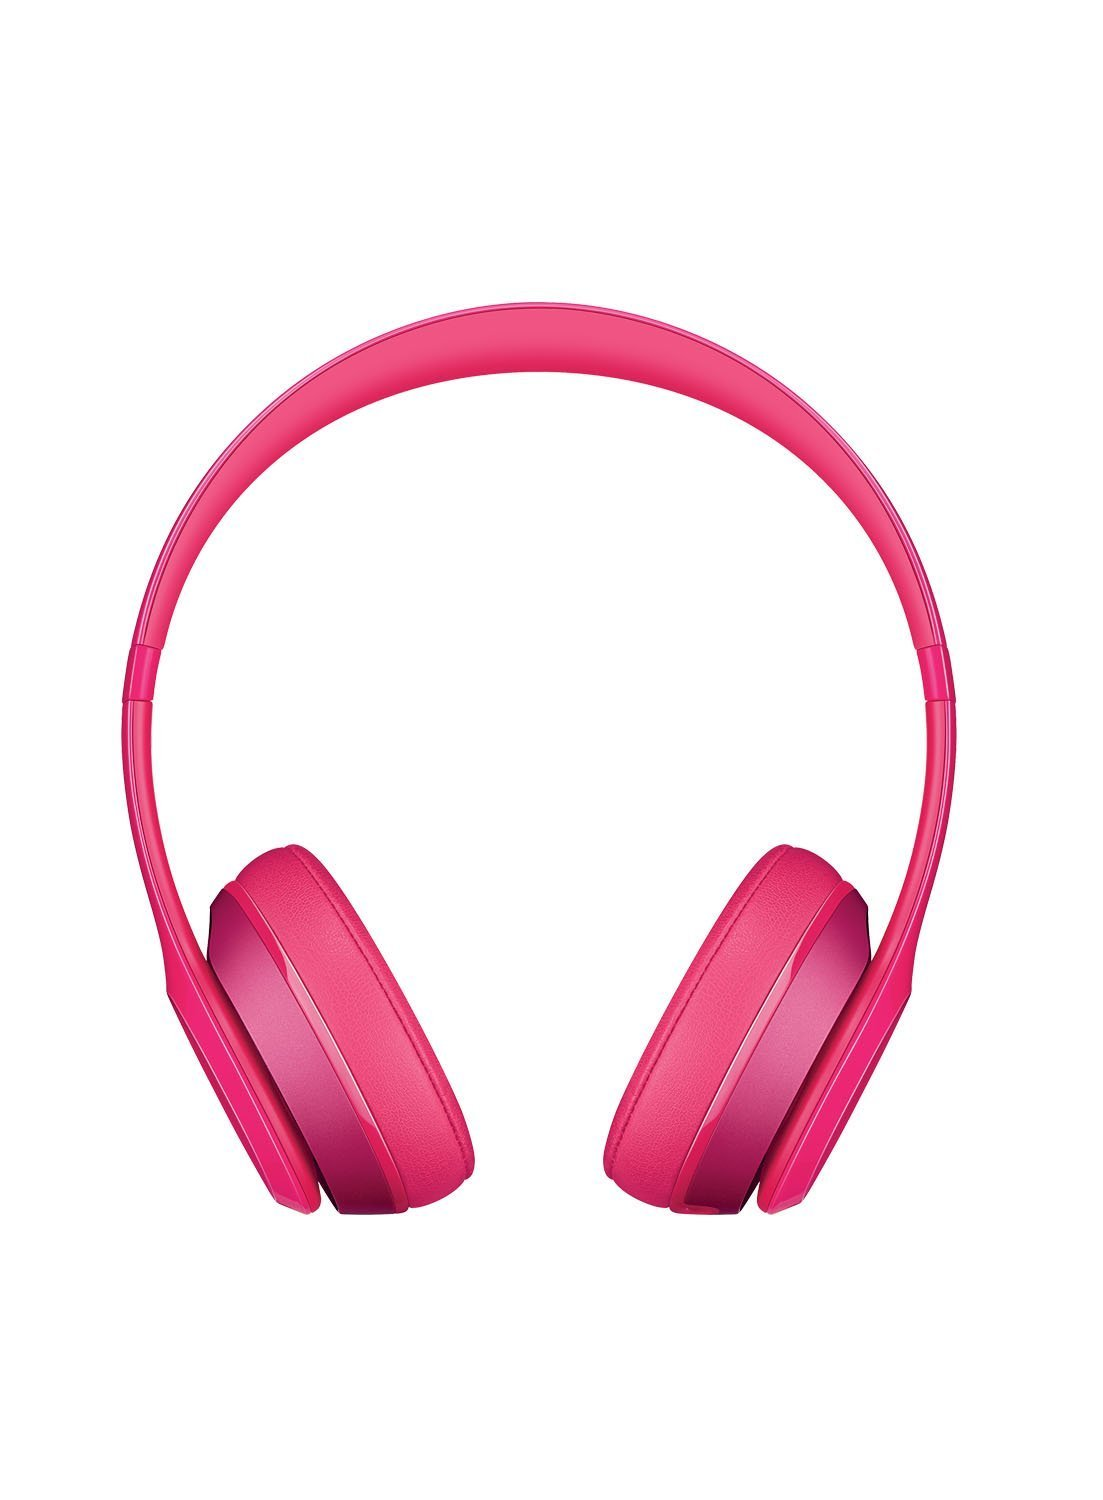 Beats Solo 2 Wired On-Ear Headphone - Pink (Certified Refurbished)